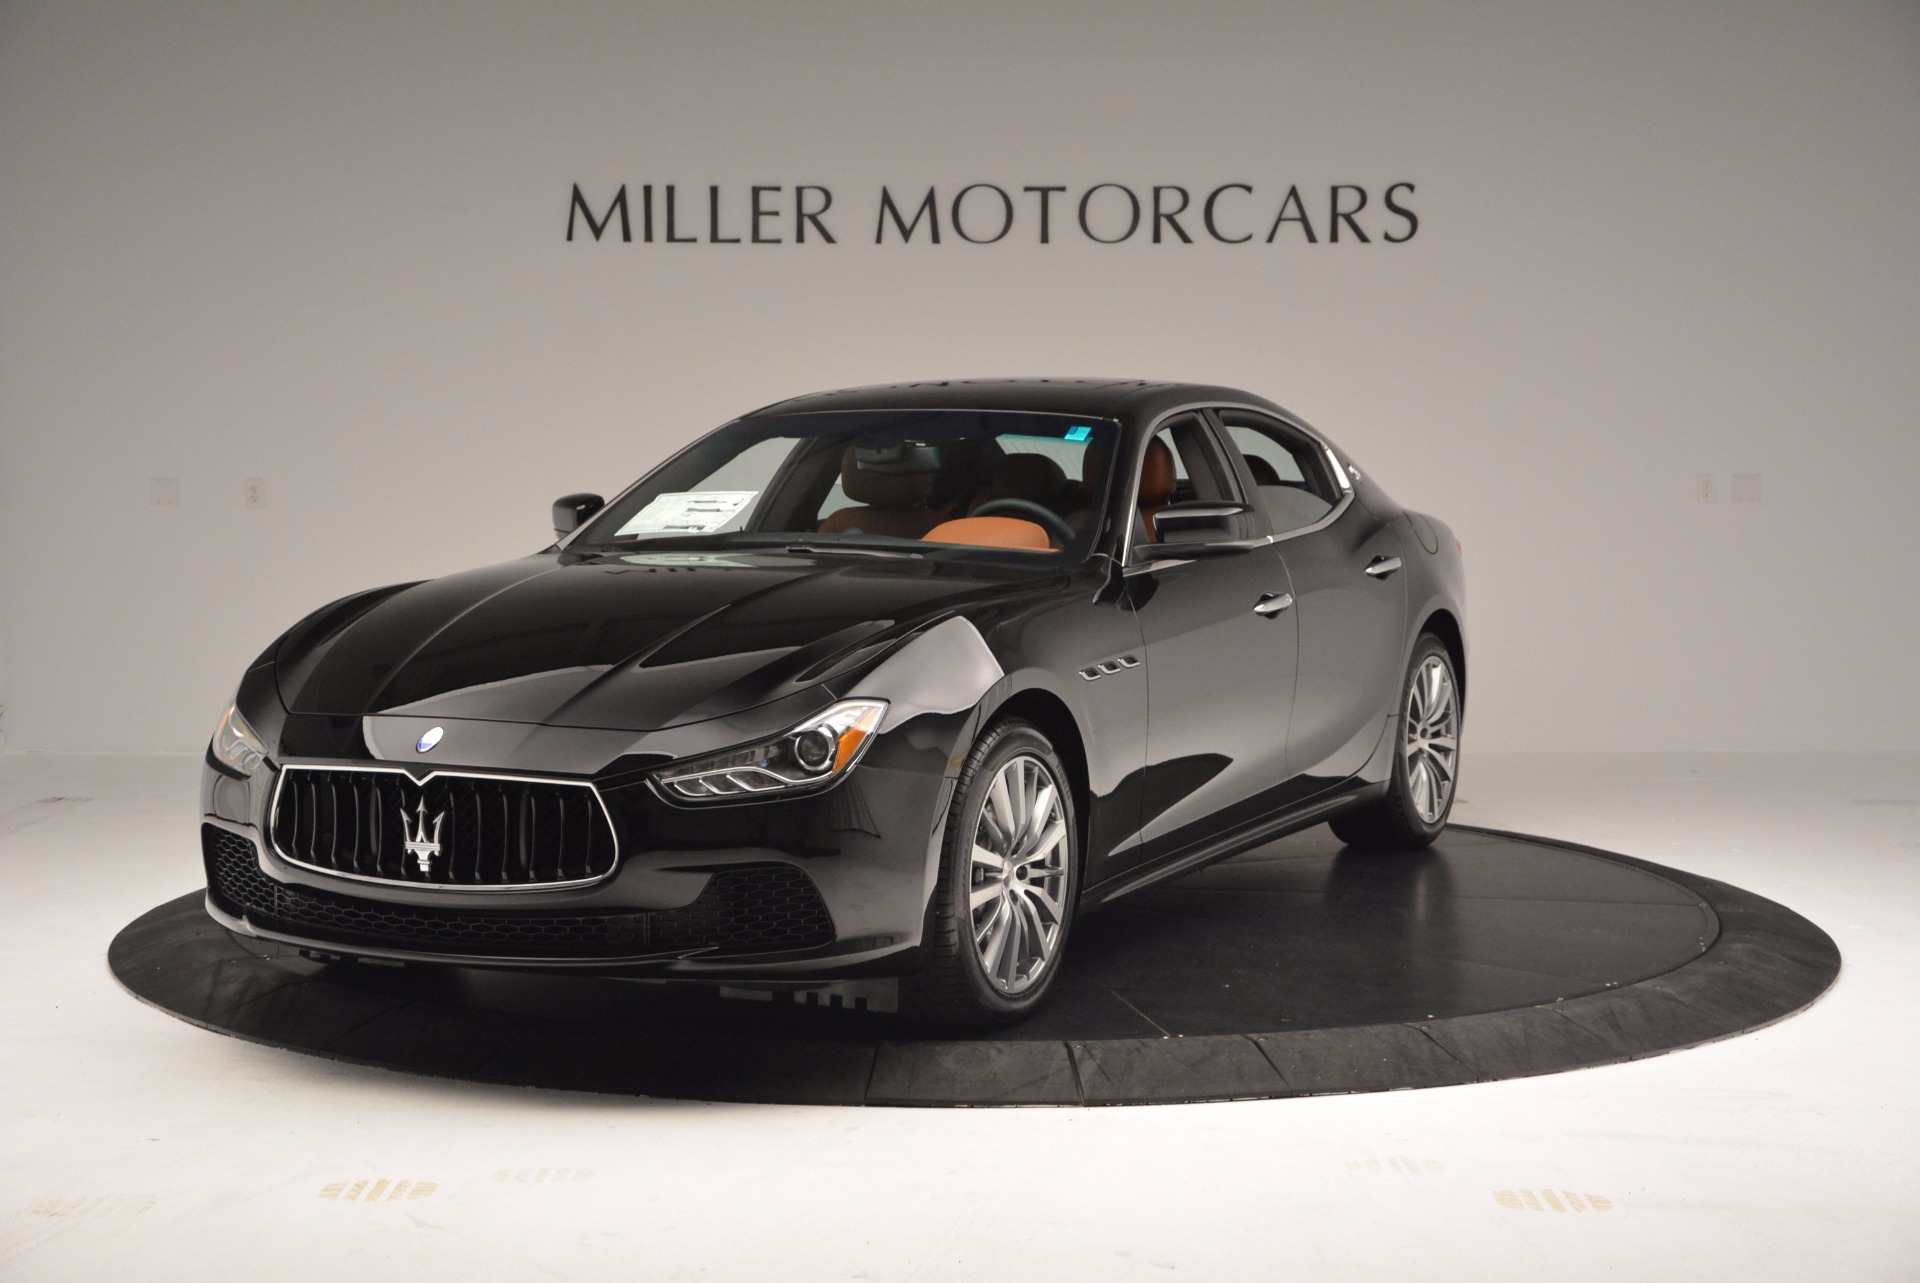 New 2017 Maserati Ghibli SQ4 for sale Sold at Rolls-Royce Motor Cars Greenwich in Greenwich CT 06830 1